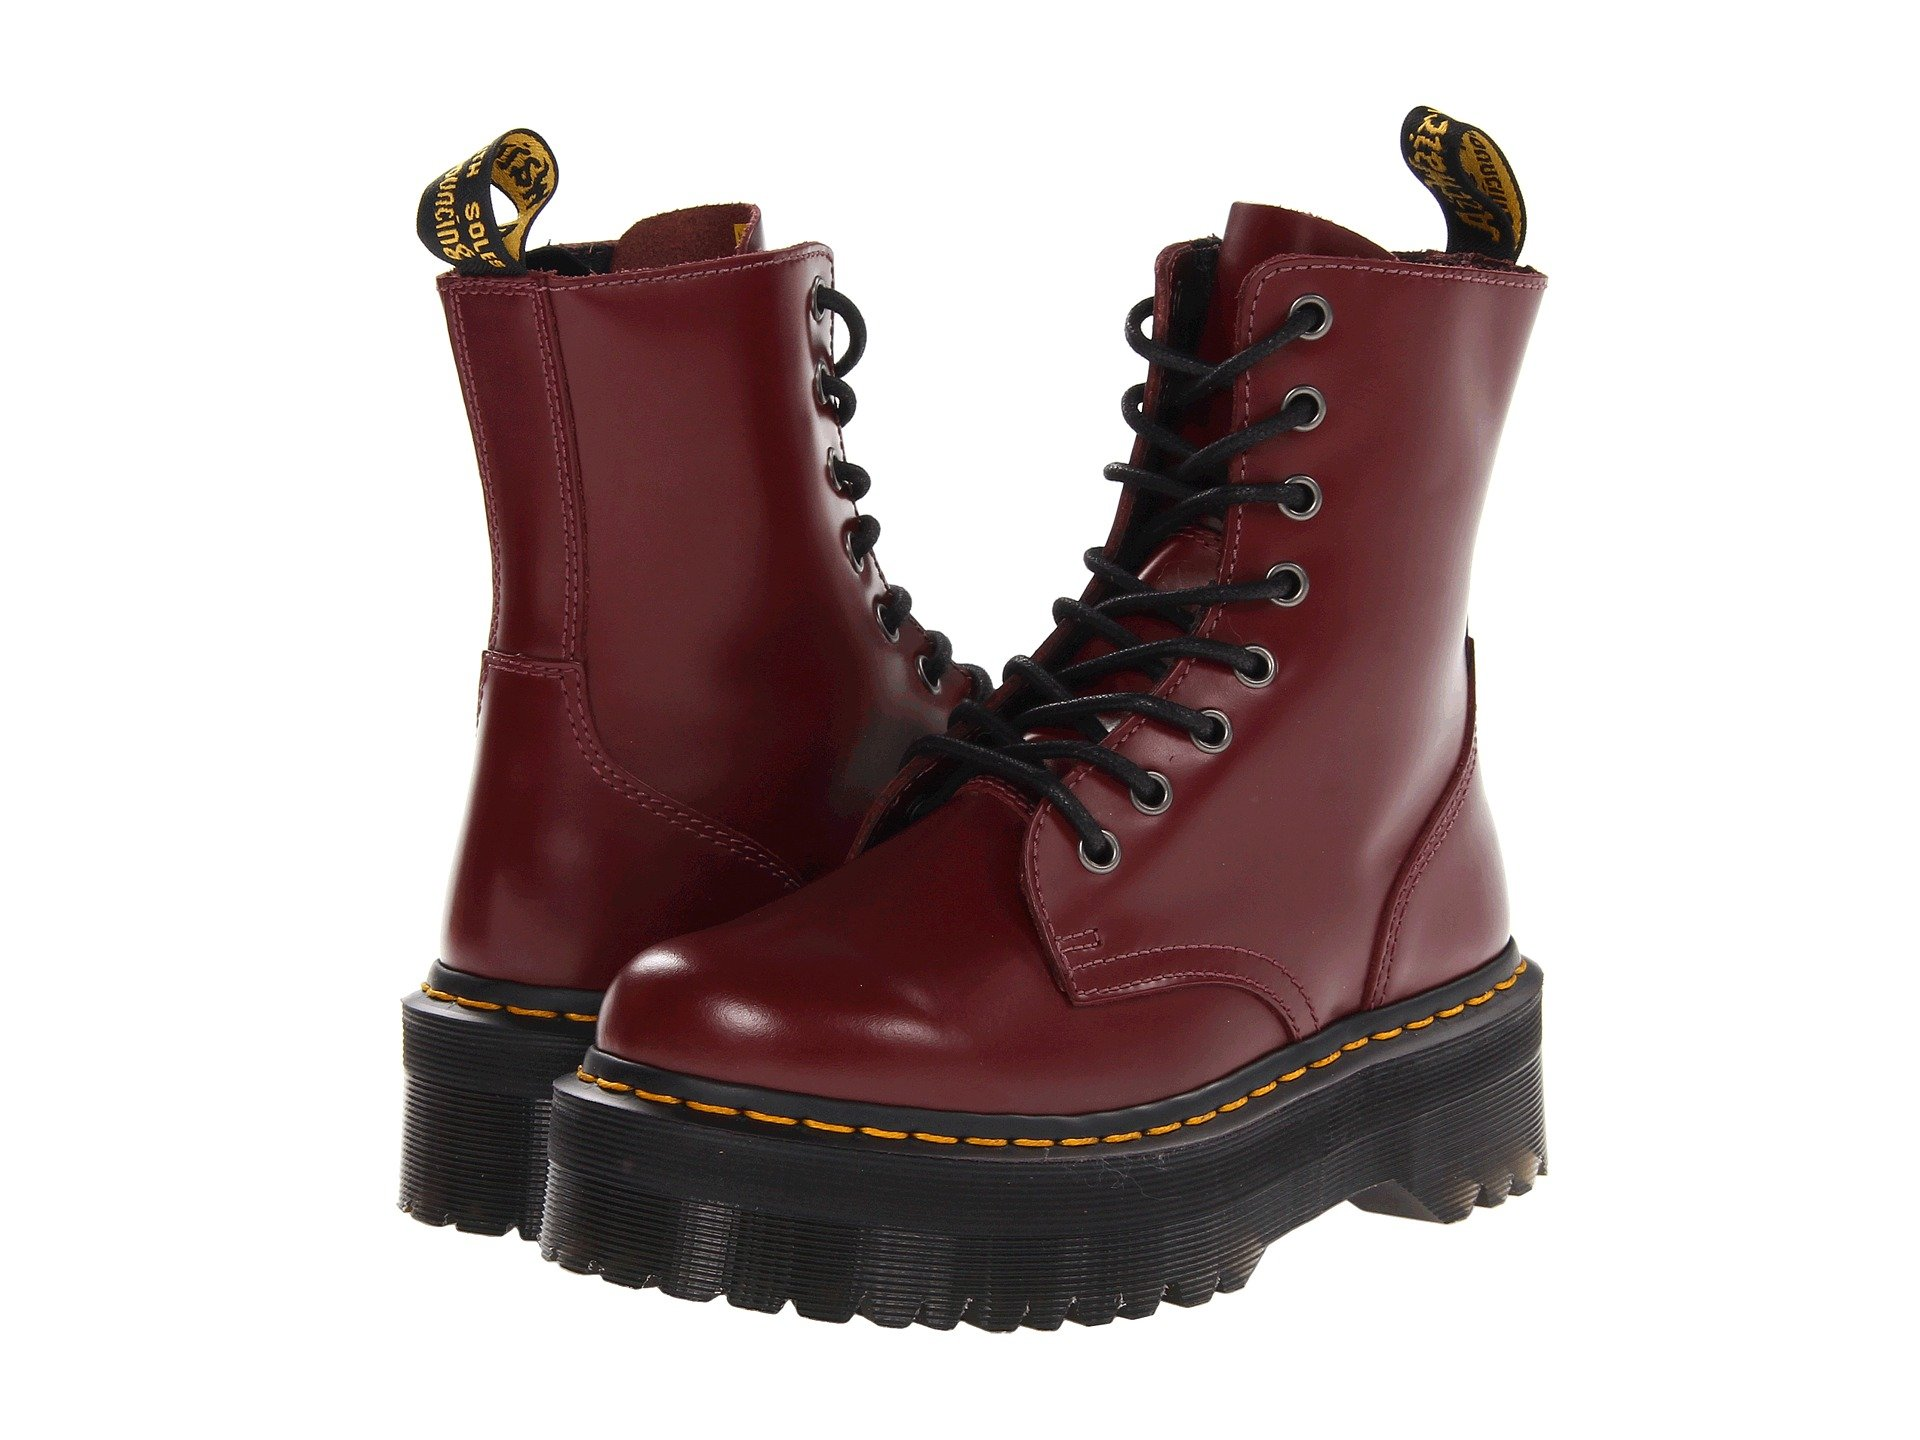 ffb35ecfc71 Jadon 8-Eye Boot, Cherry Red Polished Smooth